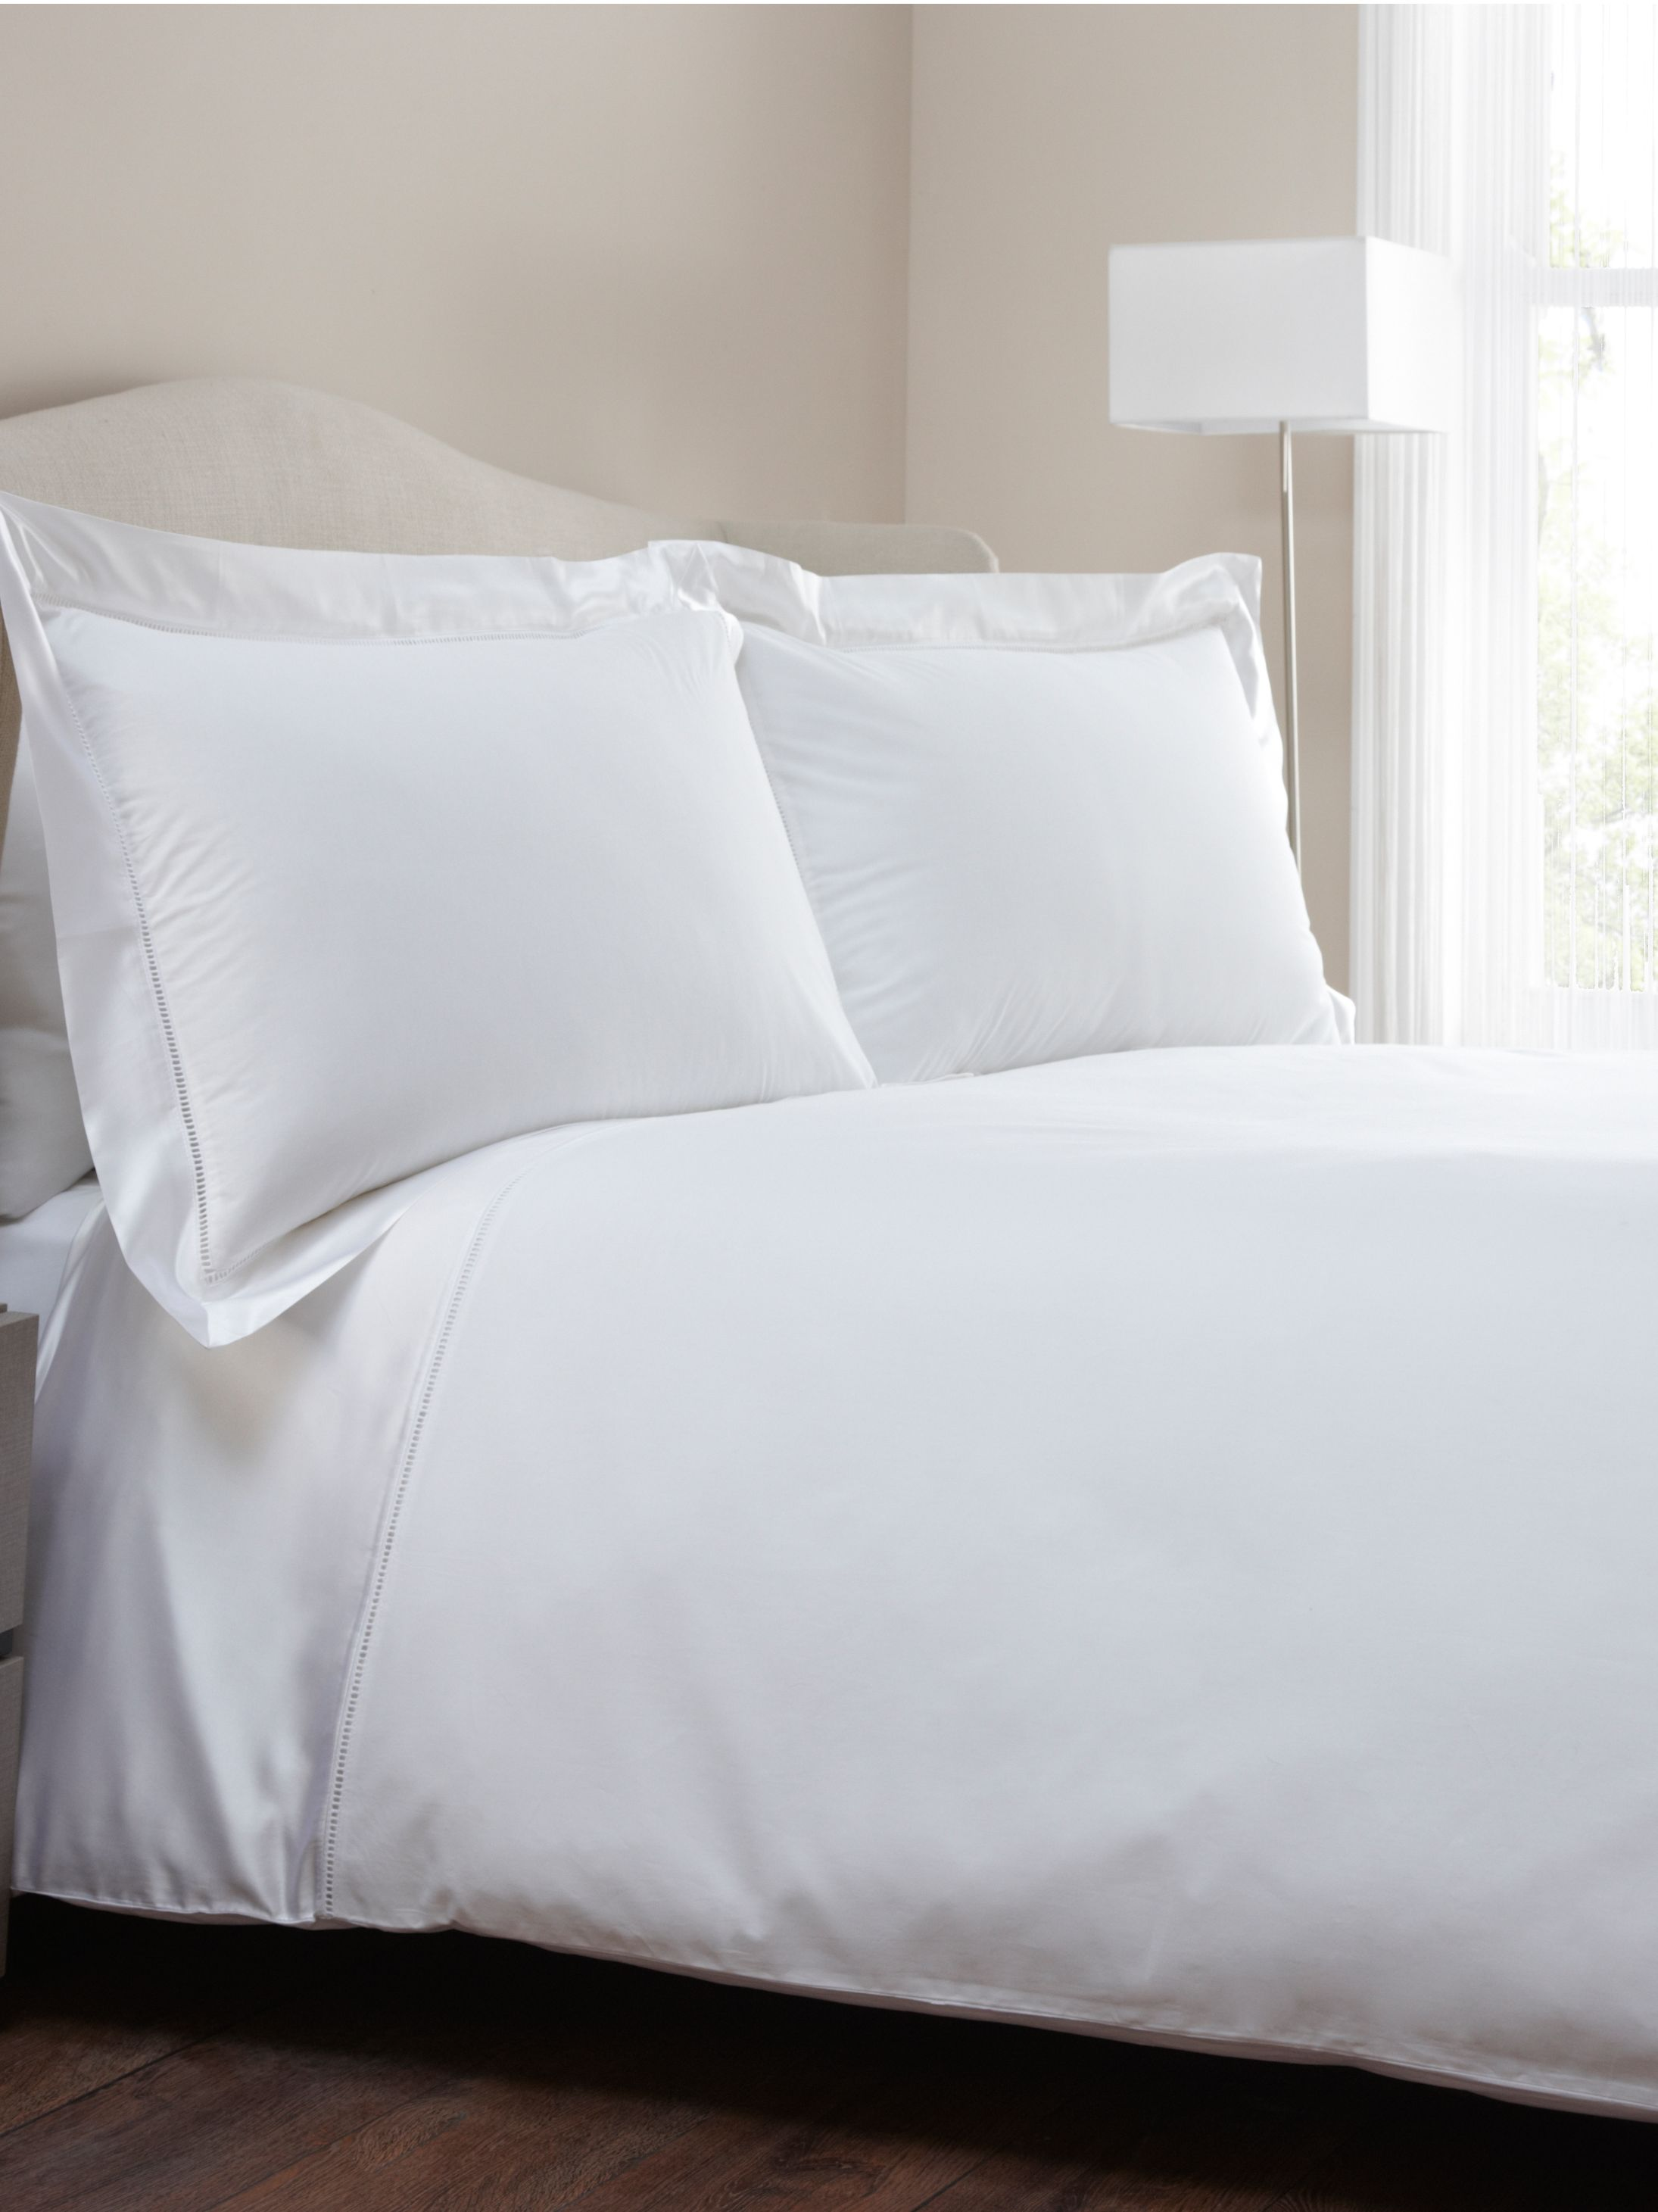 Berwick double duvet cover white